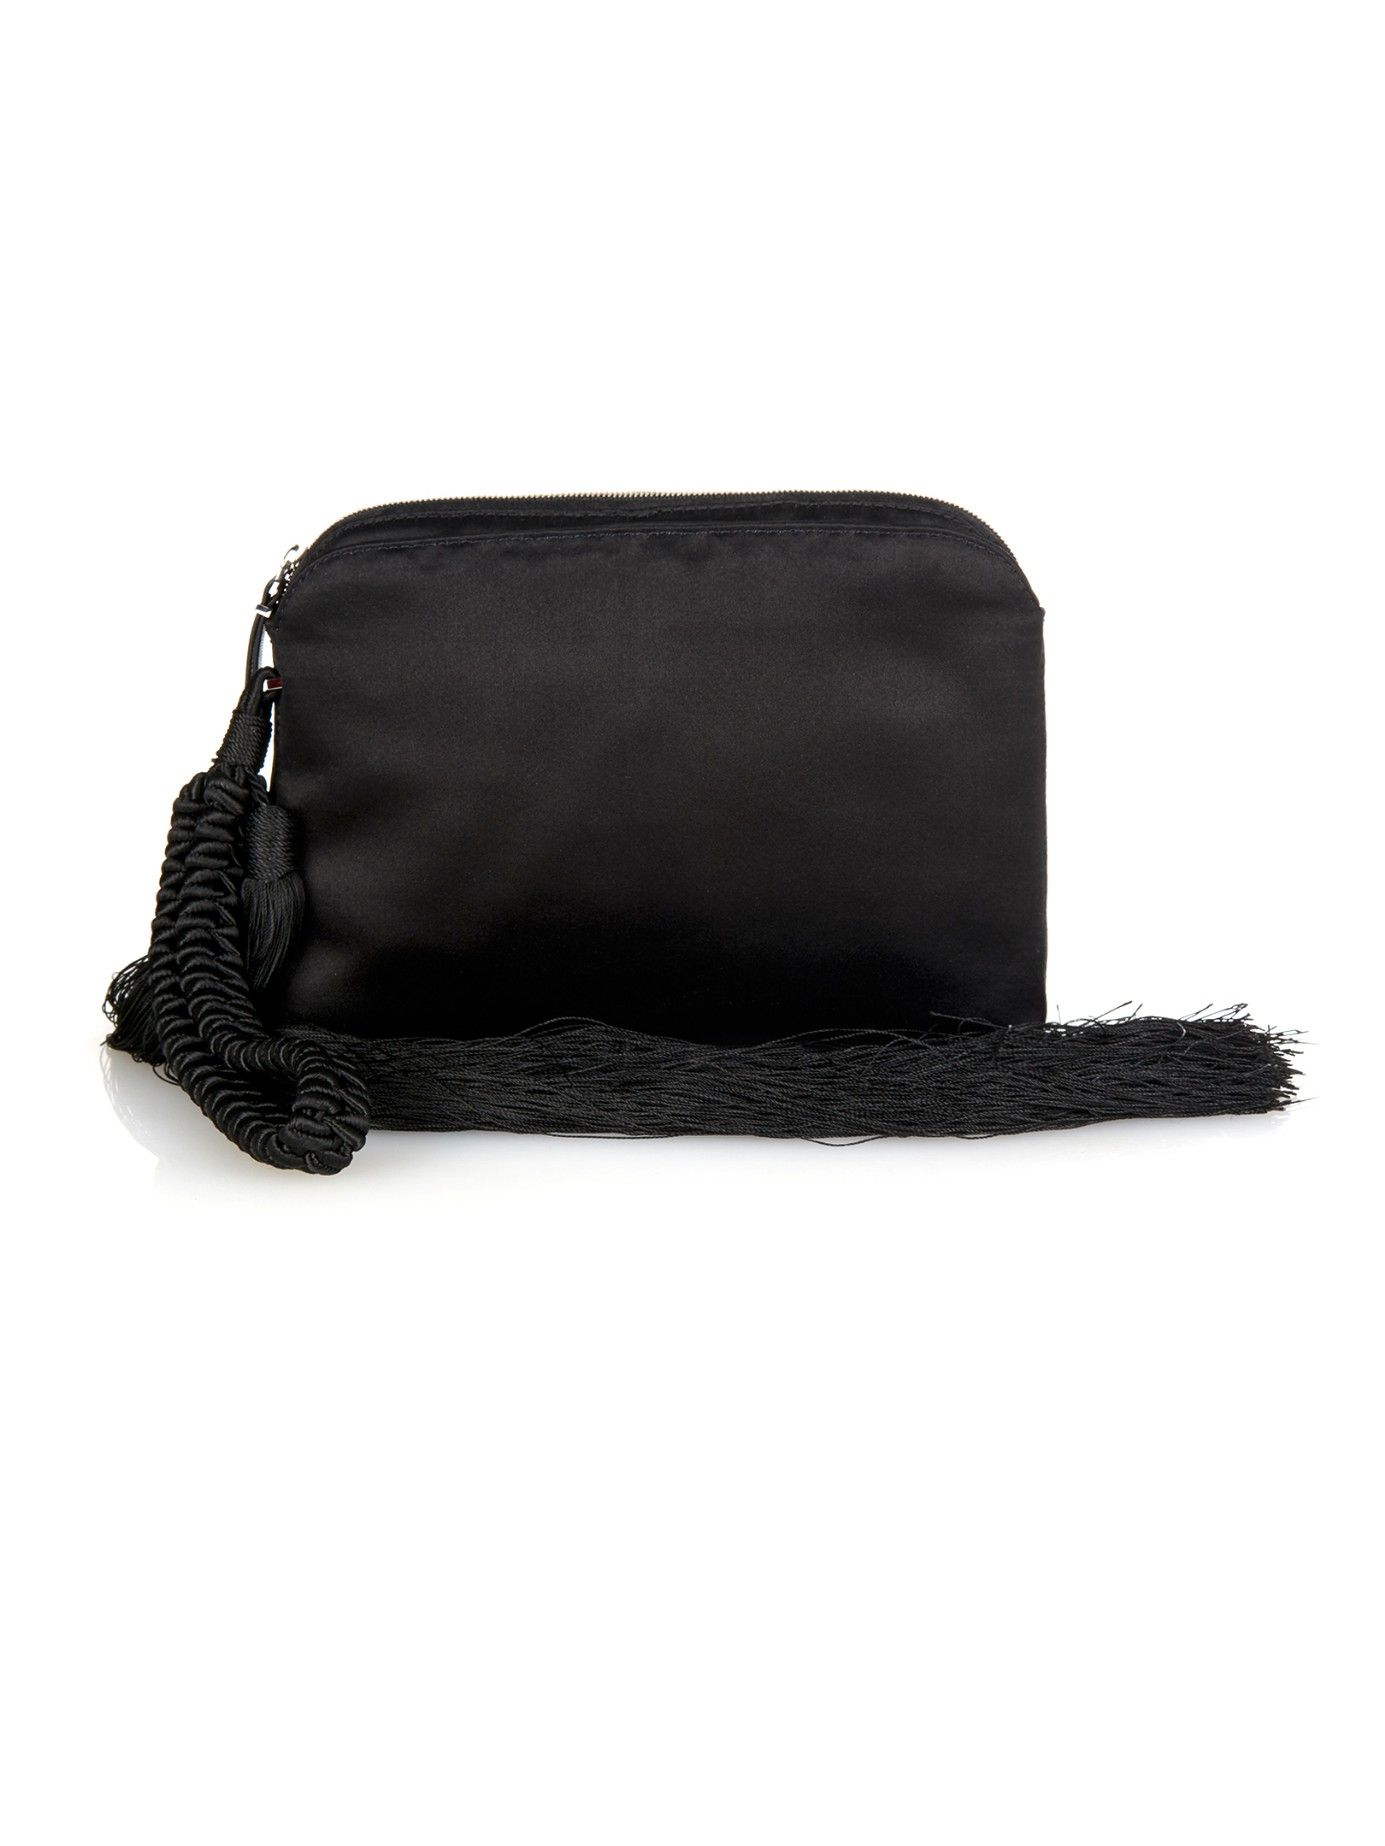 Wristlet Leather Clutch - Black The Row